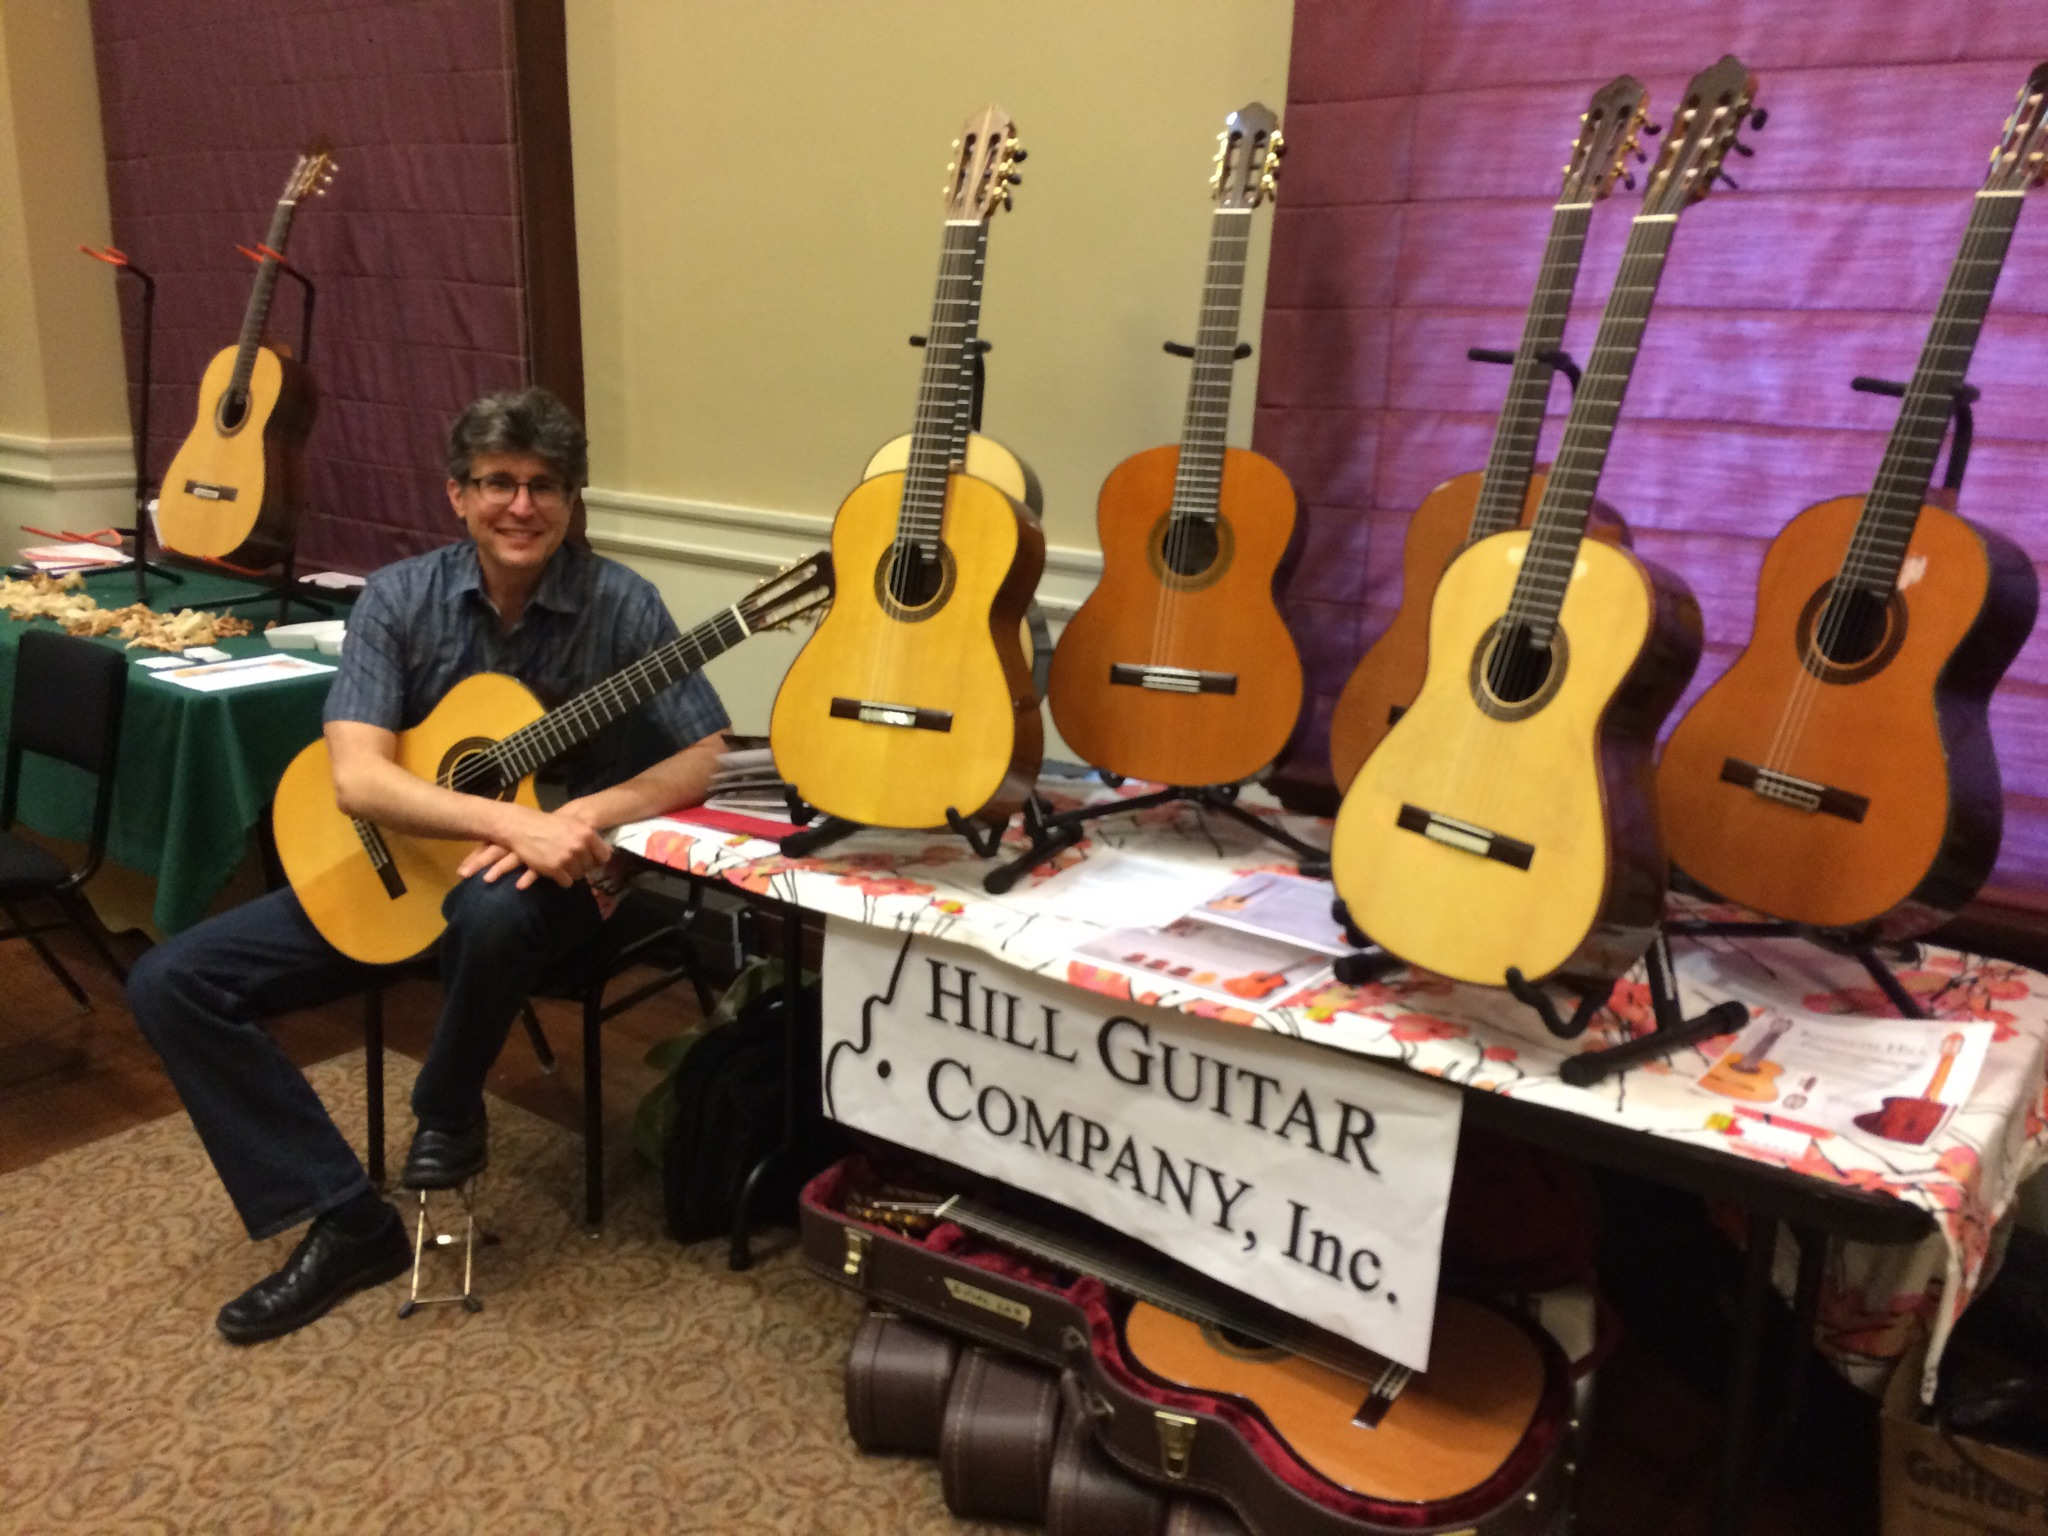 Joe Burros - Through his company, Fine Musical Instruments, Joe Burros sells guitars at locations all over New England and the North Jersey Region/Lehigh Valley Region, including Springfield, MA; Natick, MA; Acton, MA; North Reading, MA; North Kingston, RI, North Haven, CT; and Easton, PA. He also does home and teacher studio showings in New York City, and New England depending upon location, so that the player can benefit from the advice of his or her teacher before purchasing a guitar.